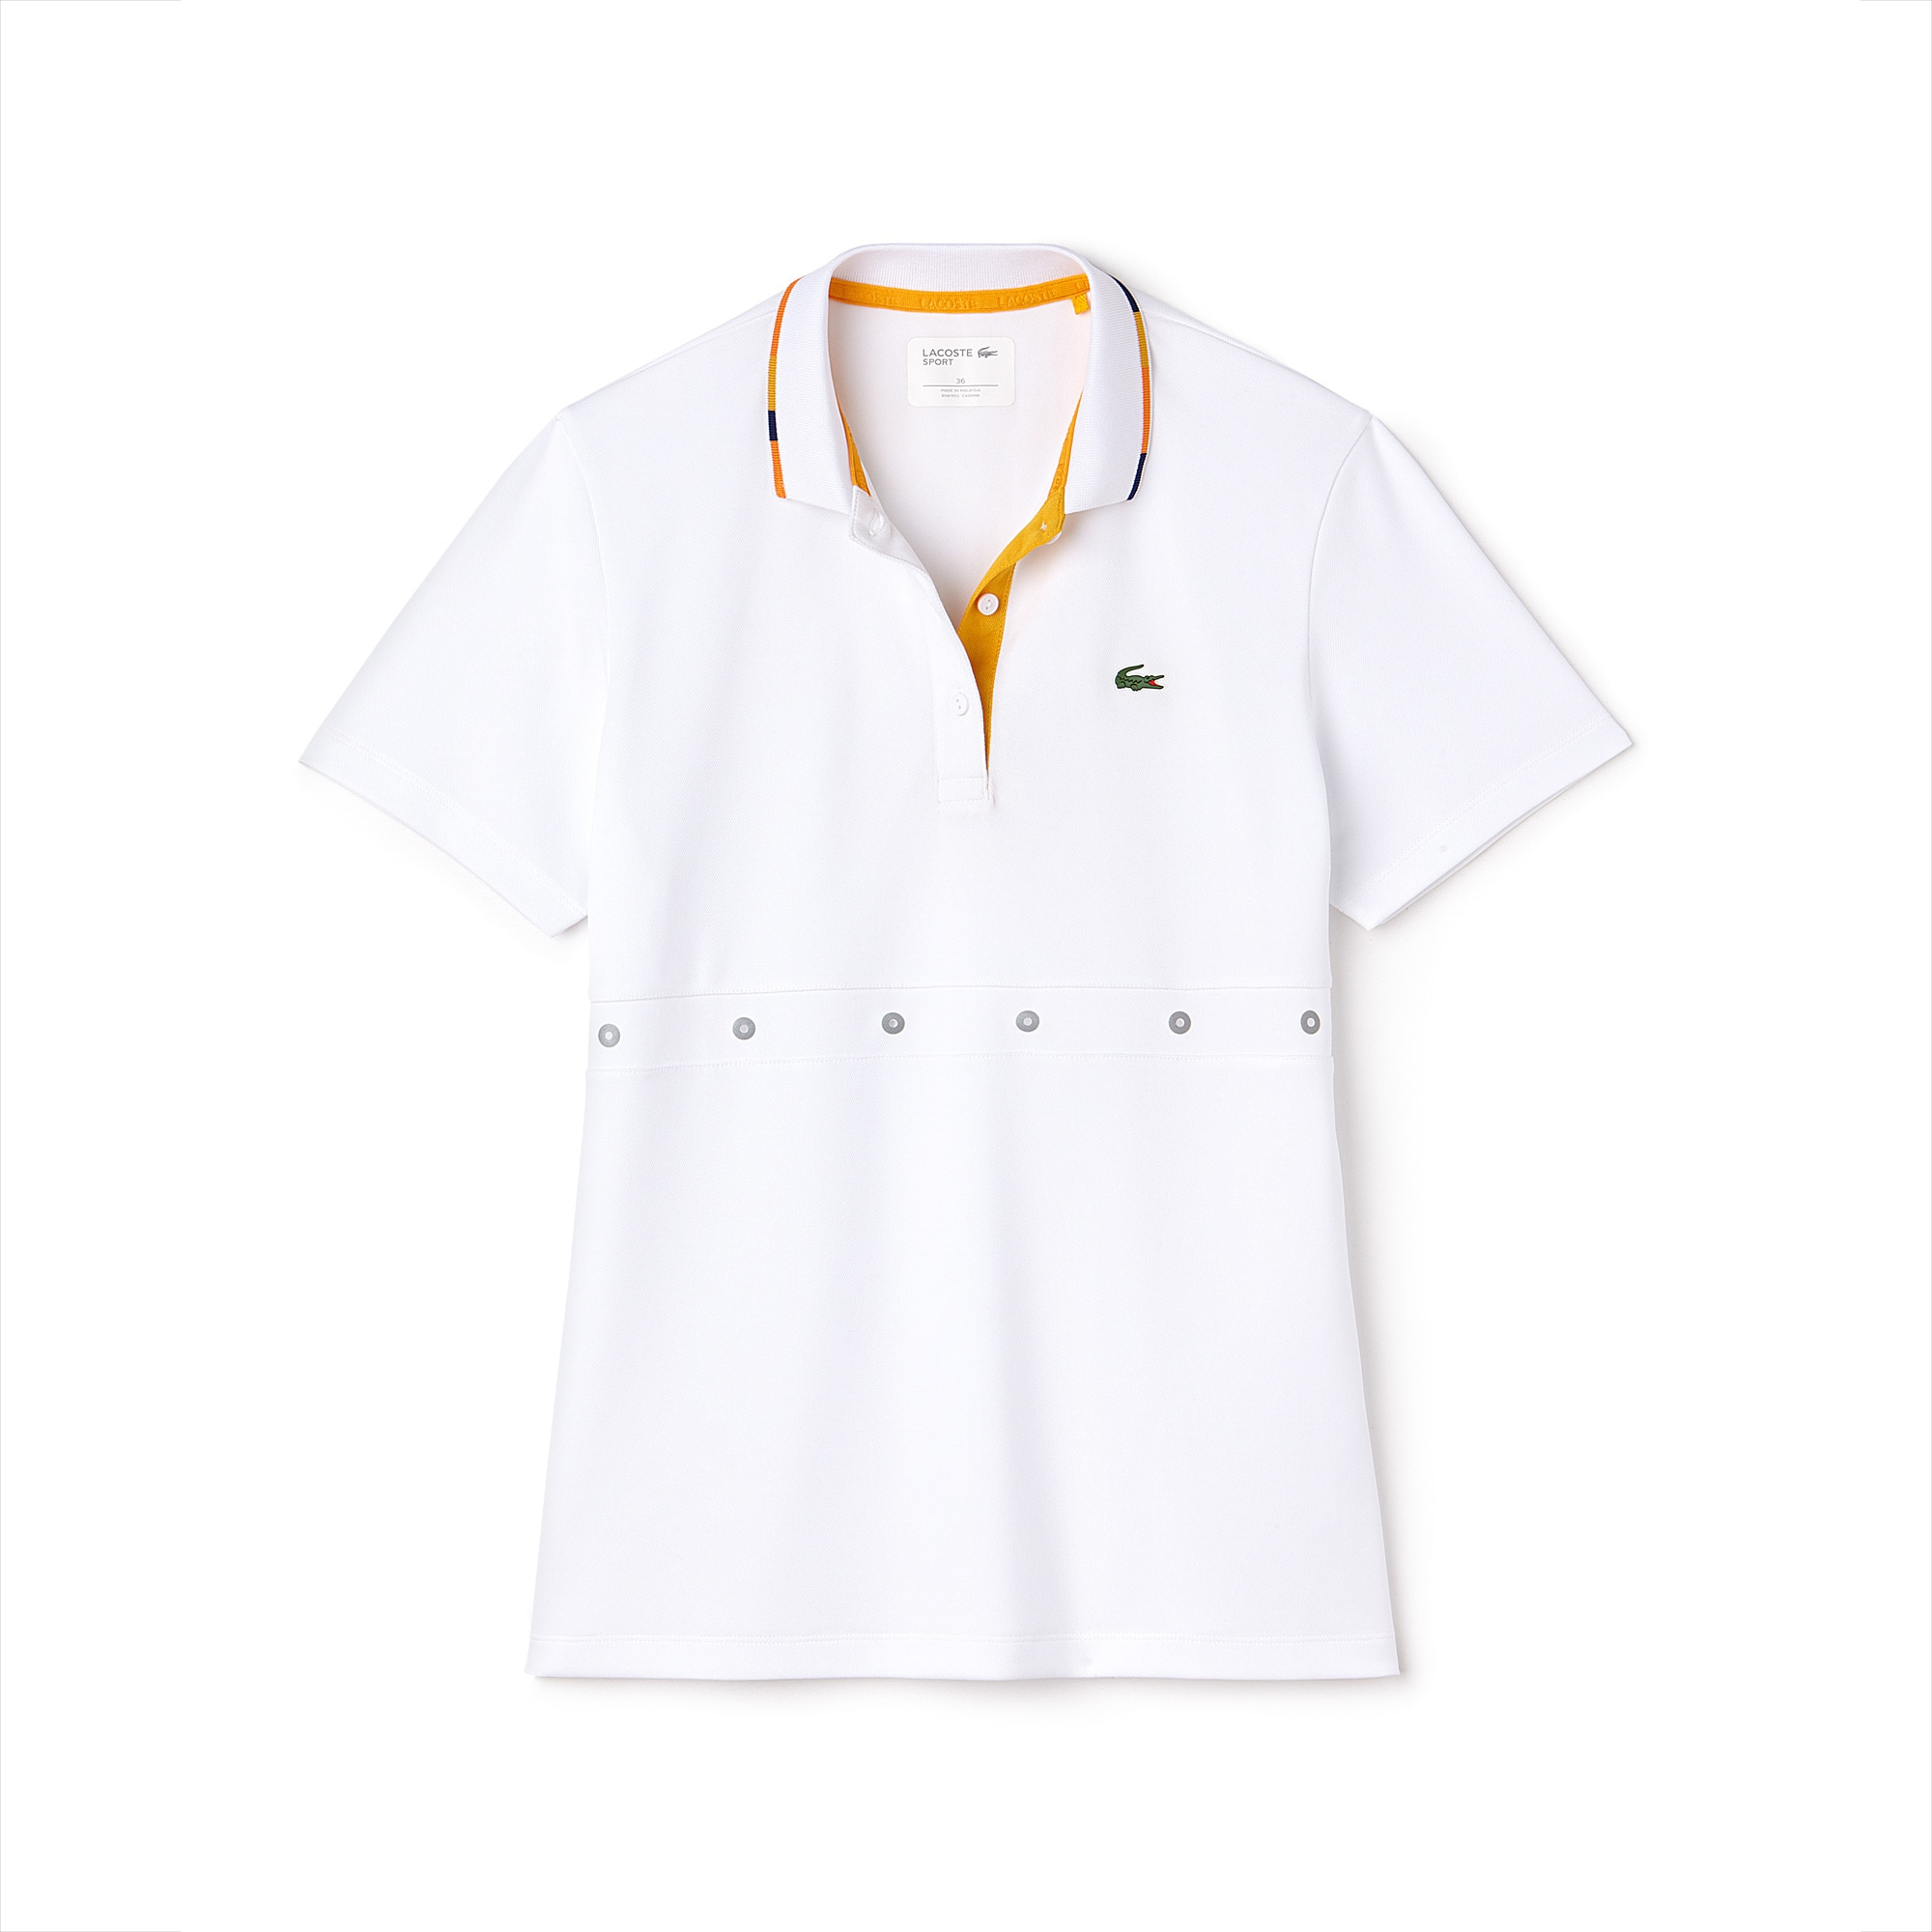 Women's SPORT Contrast Collar Tech Piqué Tennis Polo